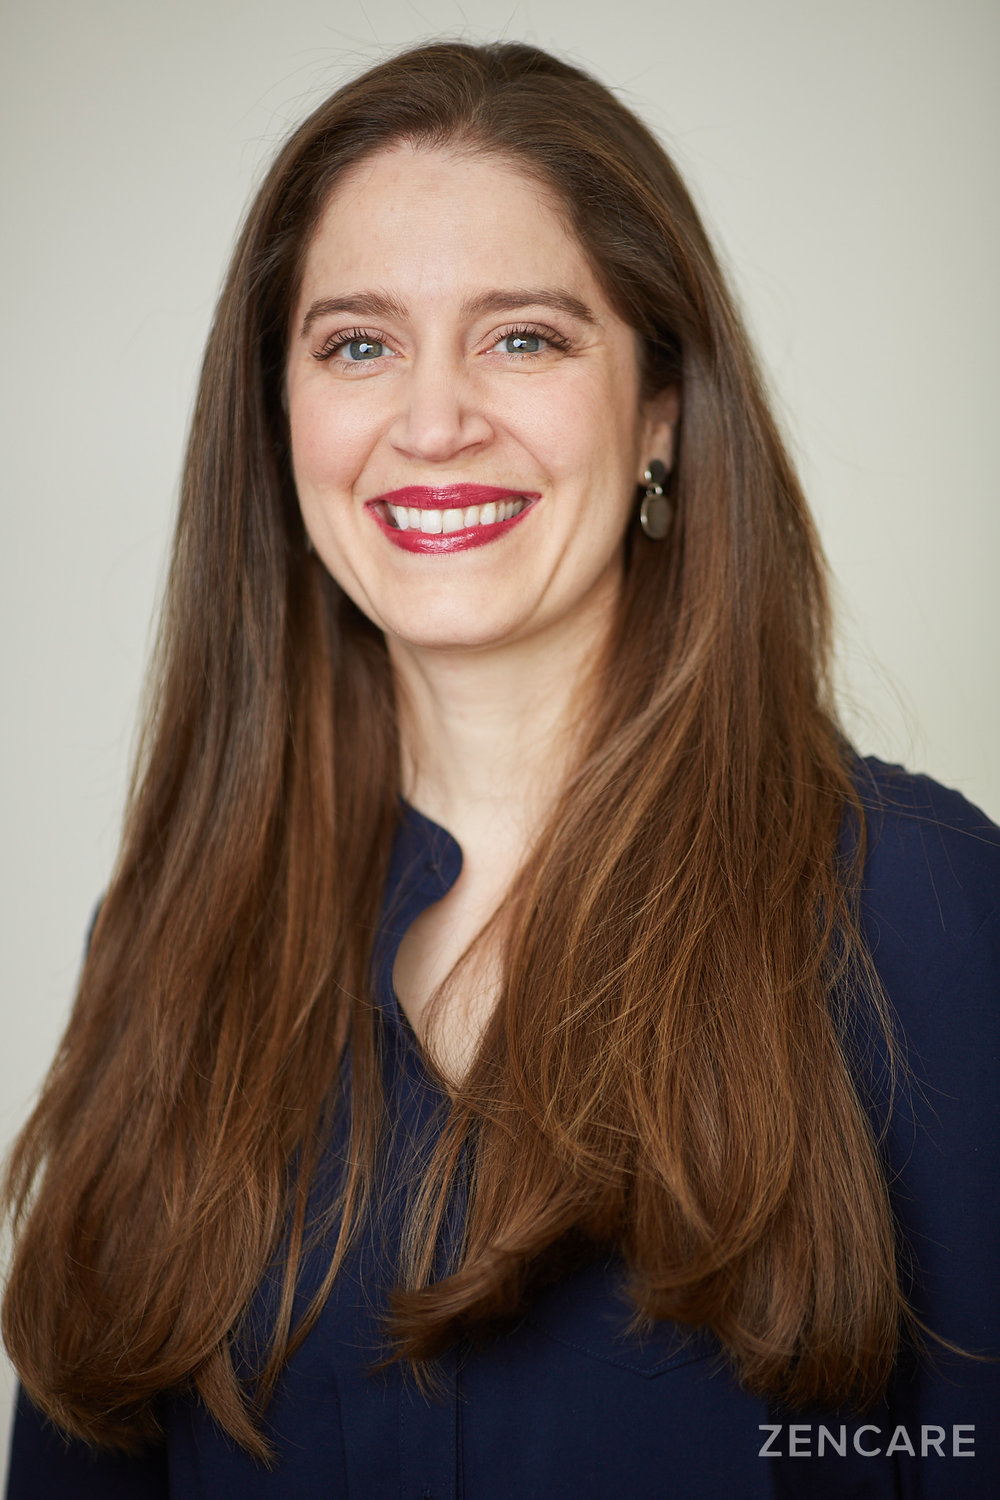 Dr. Lilia Romero-Bosch  is a psychiatrist in Barrington, RI. She is dedicated to the practice of Functional Medicine to provide specialized care and help her clients become as healthy as possible.